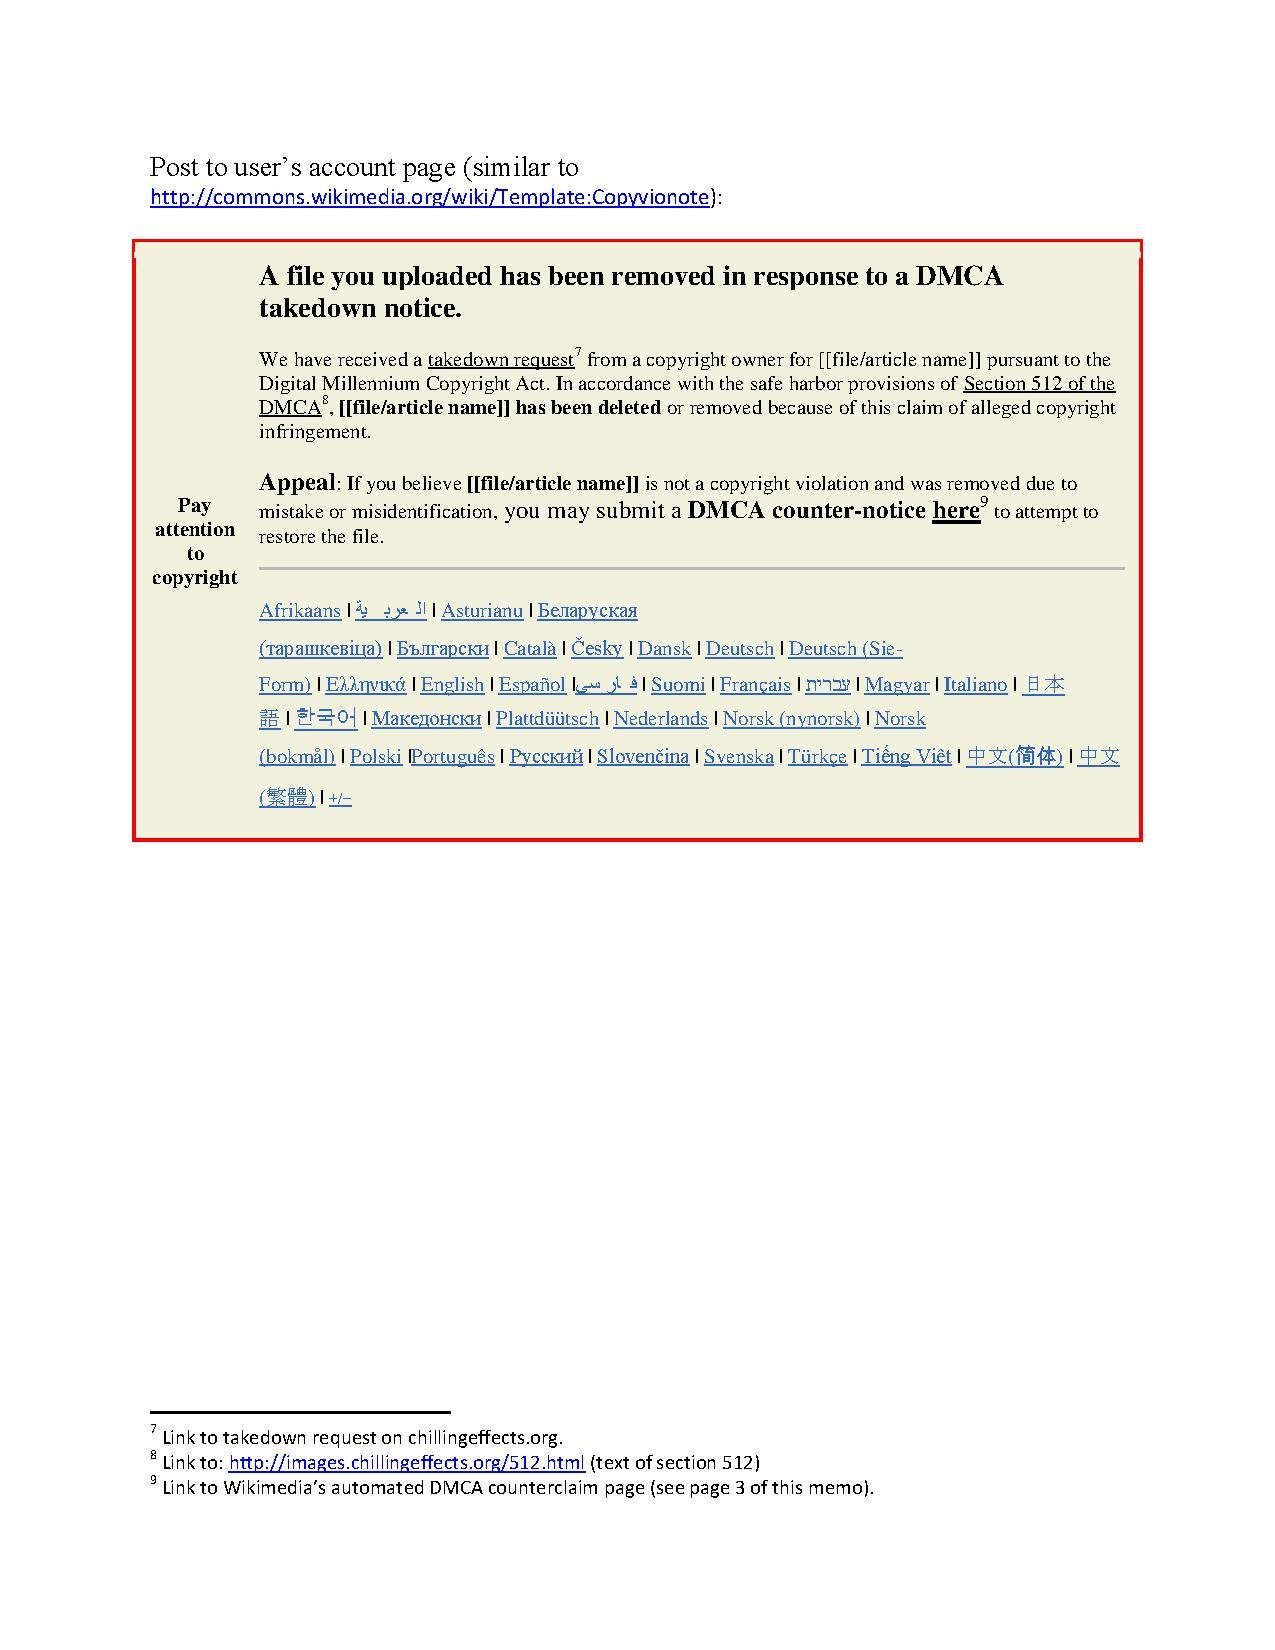 Filememo Wmf Dmca Takedown And Counterclaim Notificatino Template